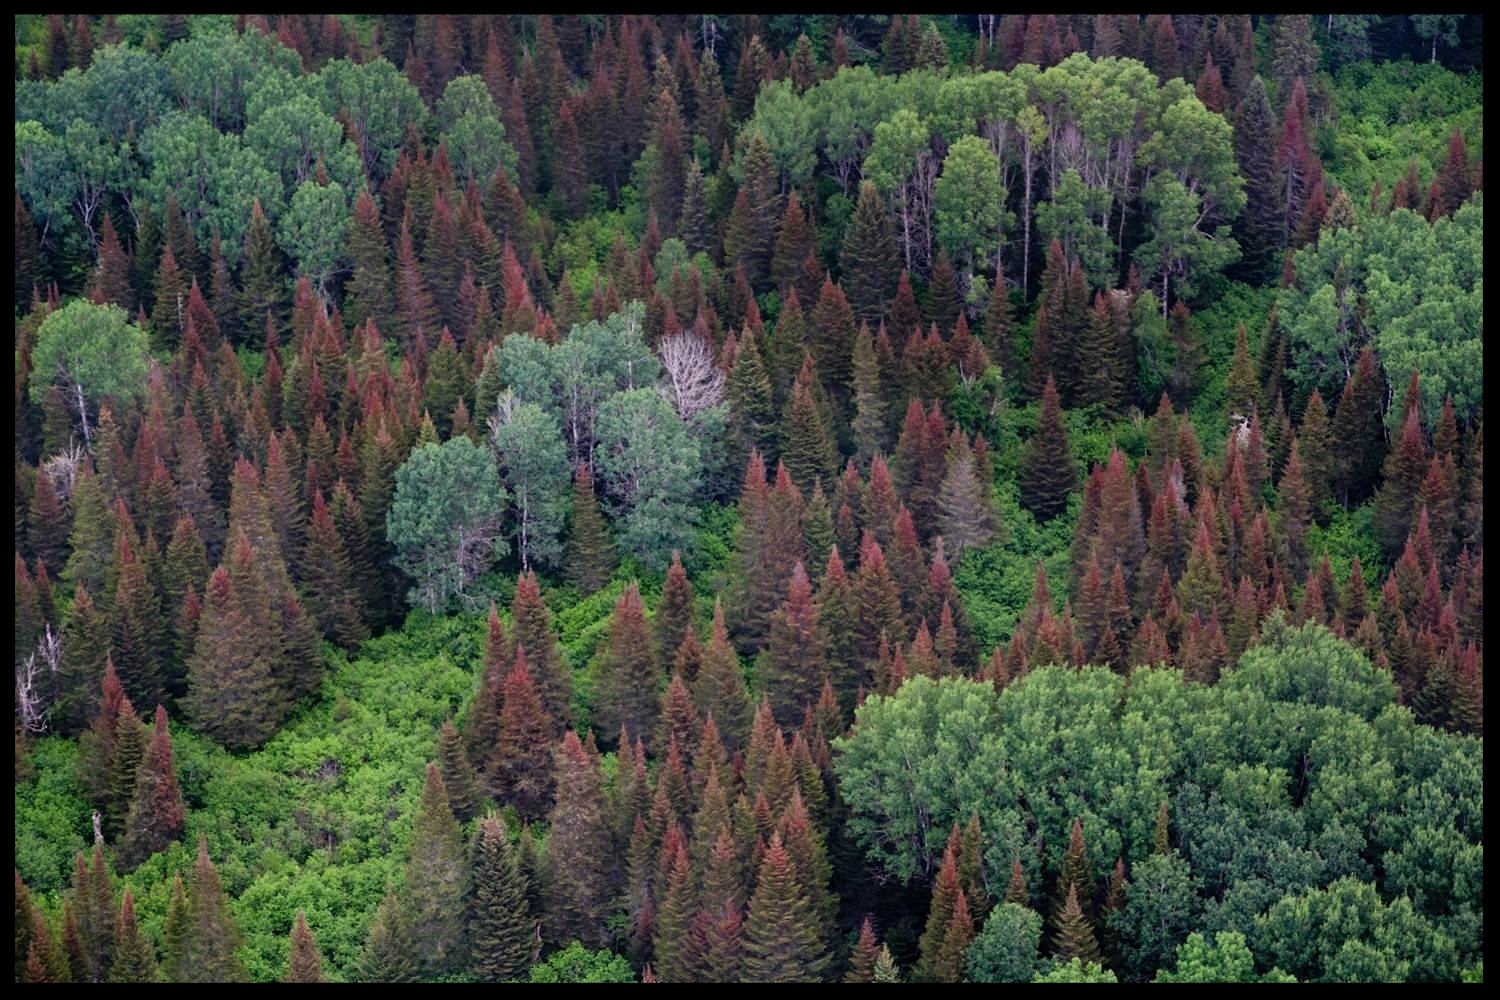 Image courtesy of the Canadian Forest Service